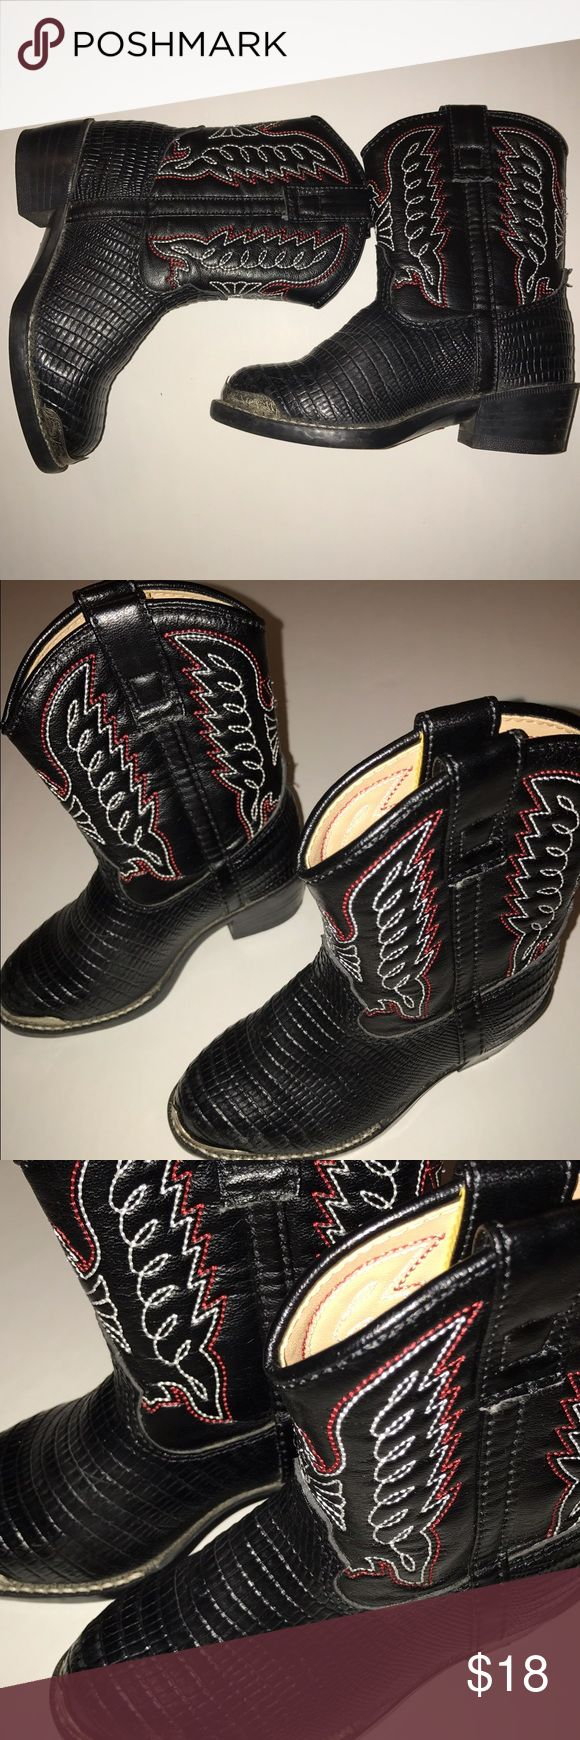 Cowboy boots, toddler 8 Adorable cowboy boots, gently used, black with red and white stitching, Durango size 8. Durango Shoes Boots